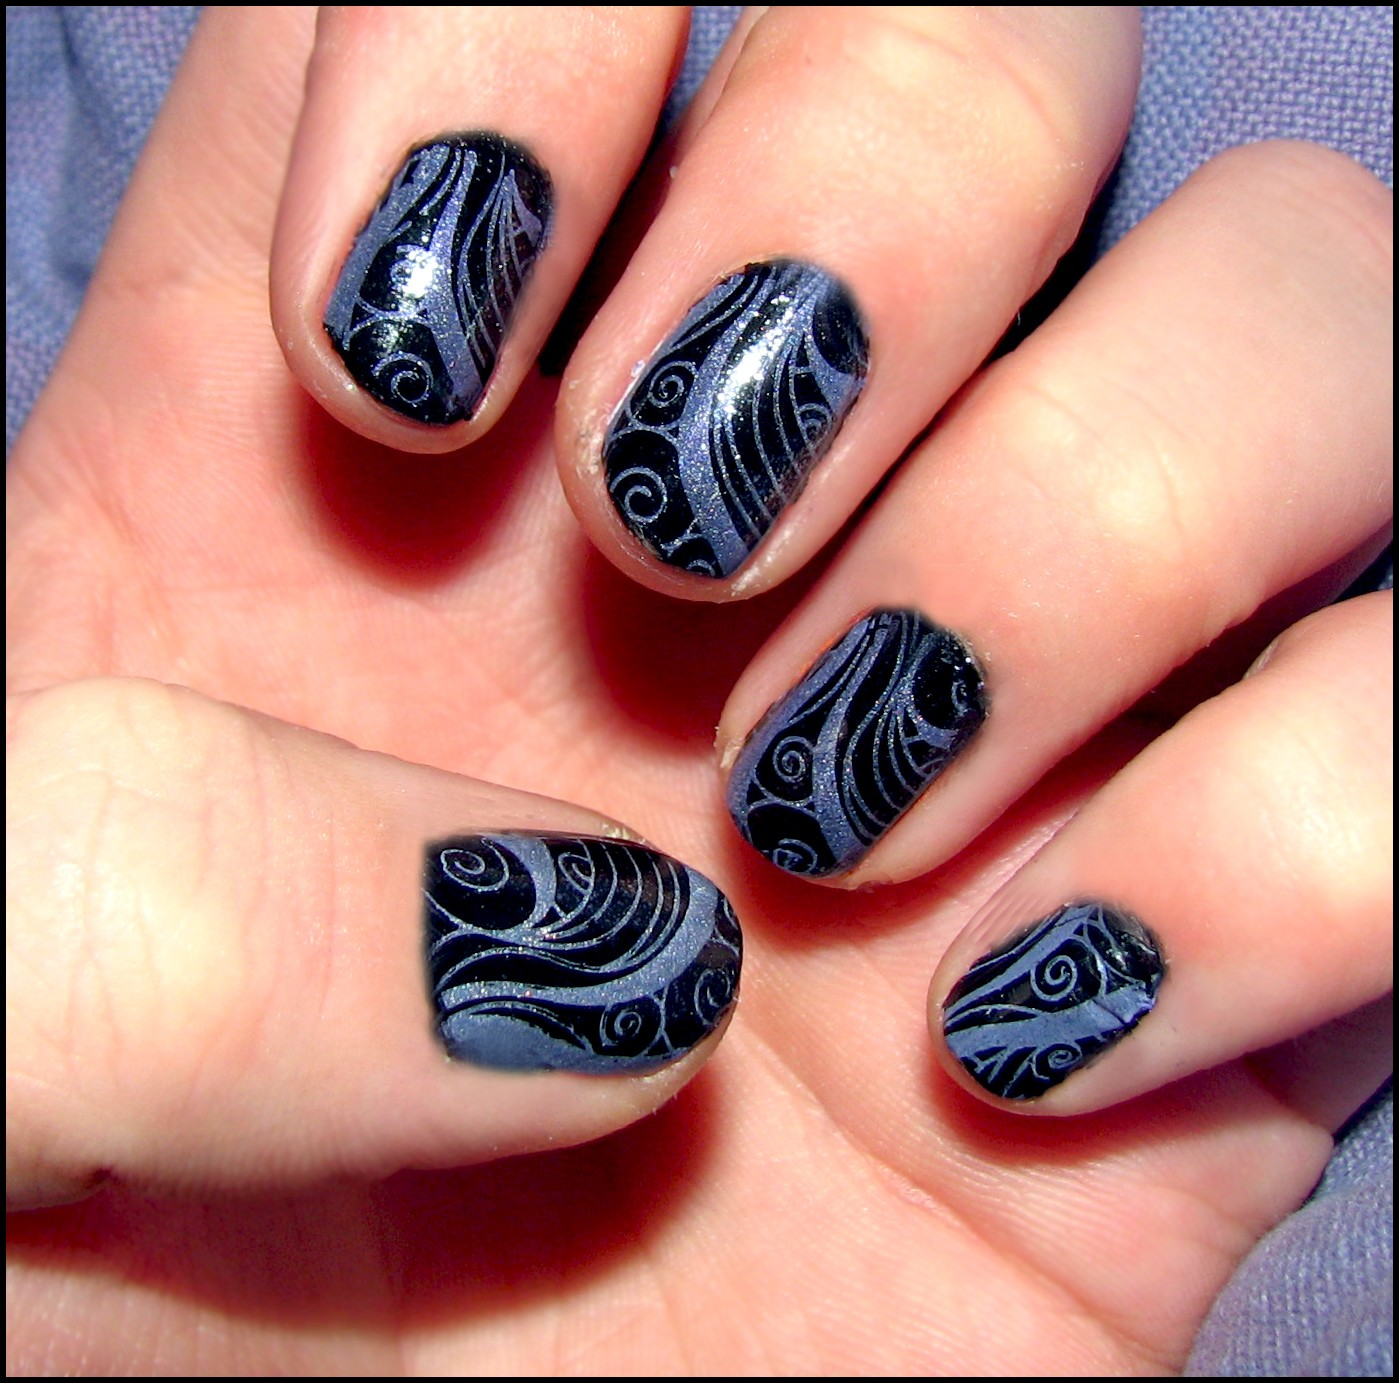 Pics Of Nail Art: 2014 Nail Art Ideas For Prom